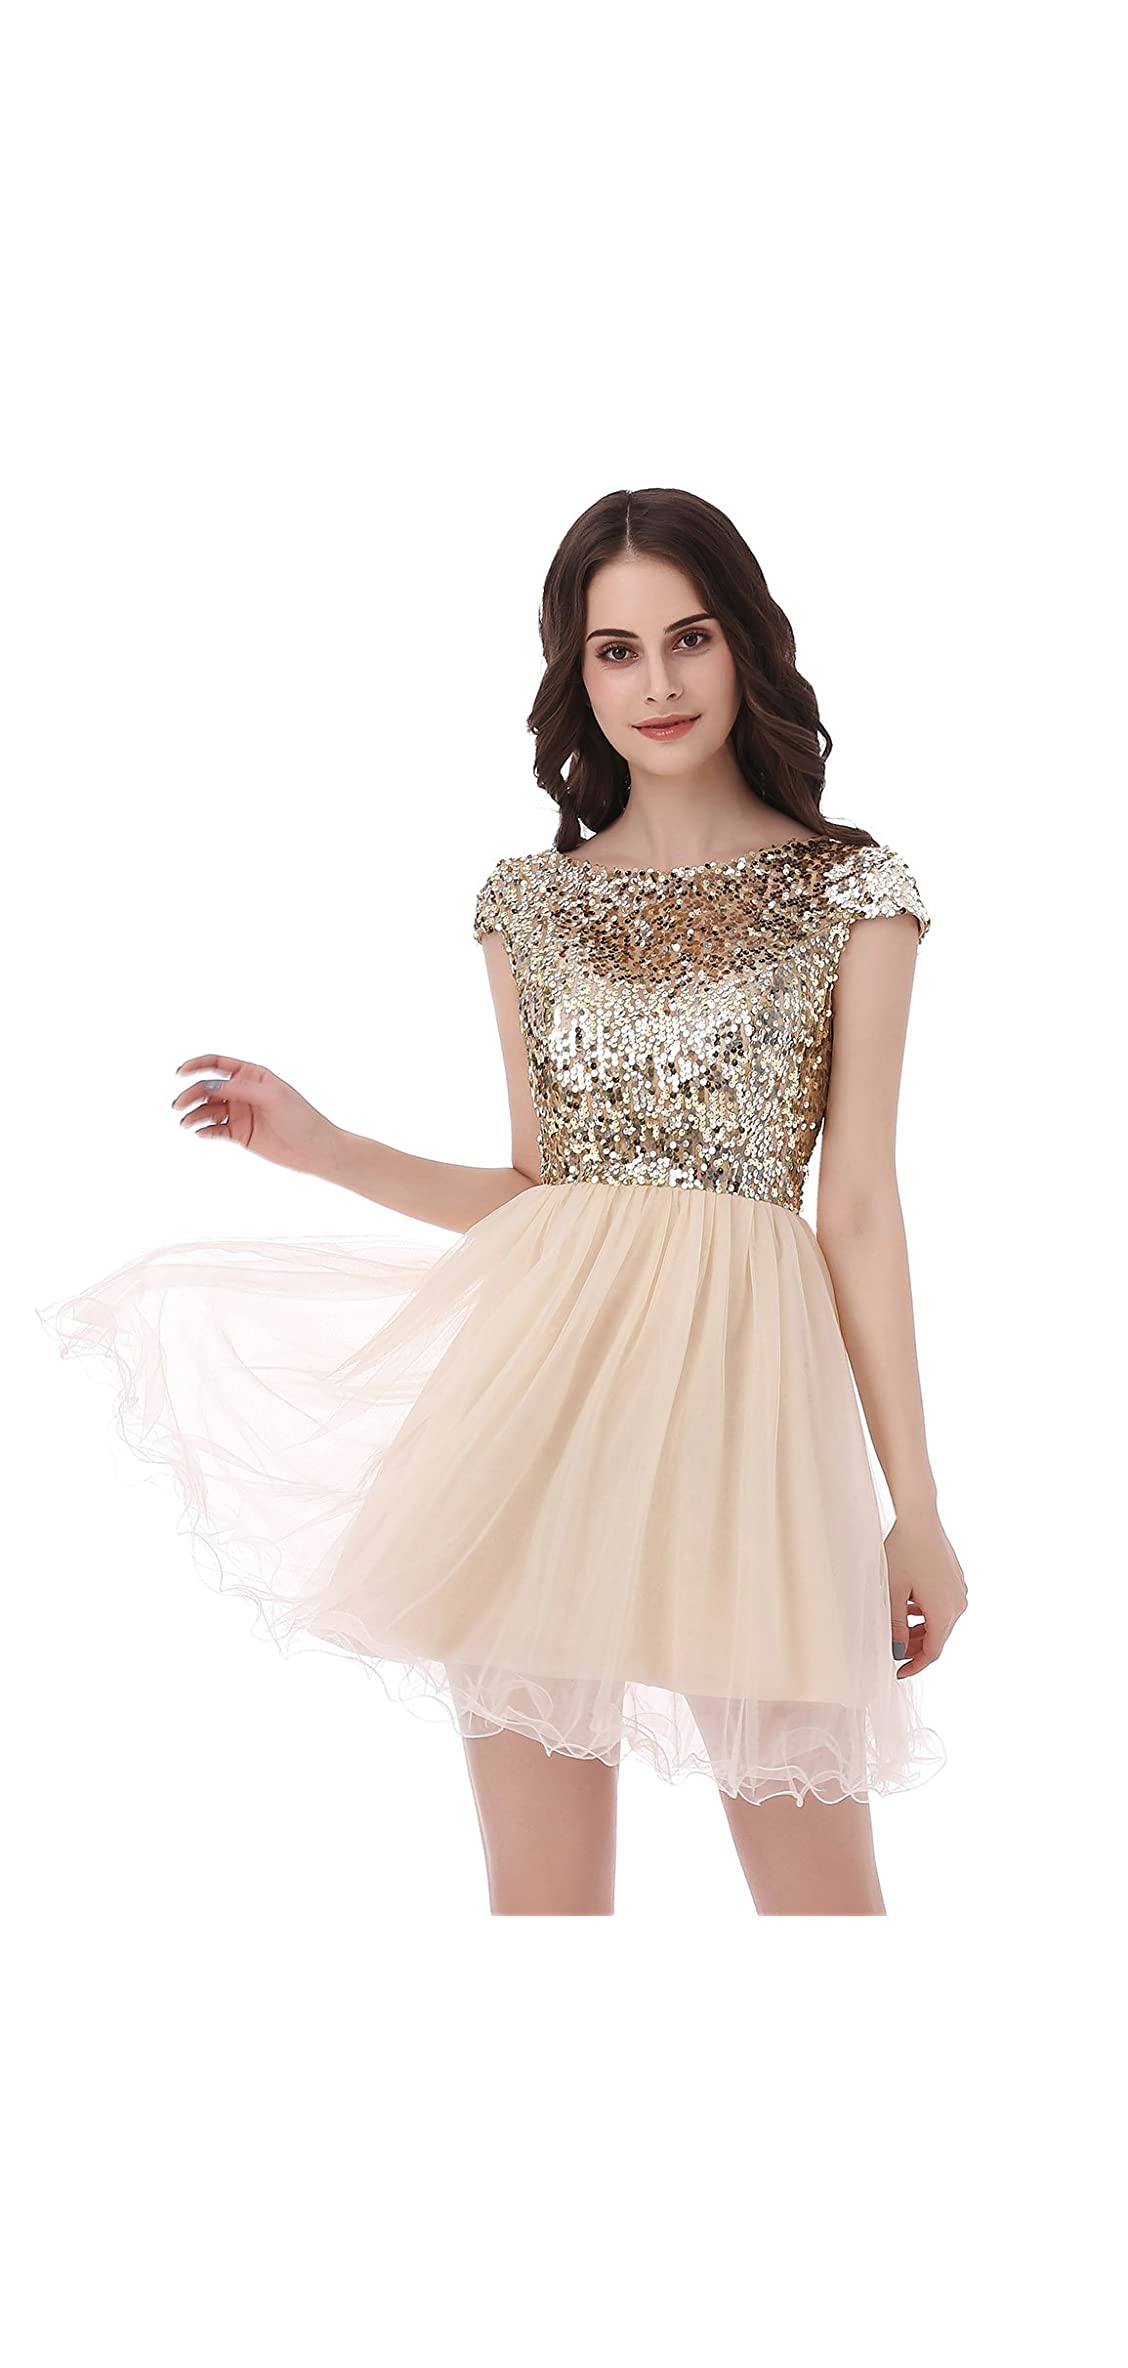 Womens Short Tullle Sequins Homecoming Dresses Mine